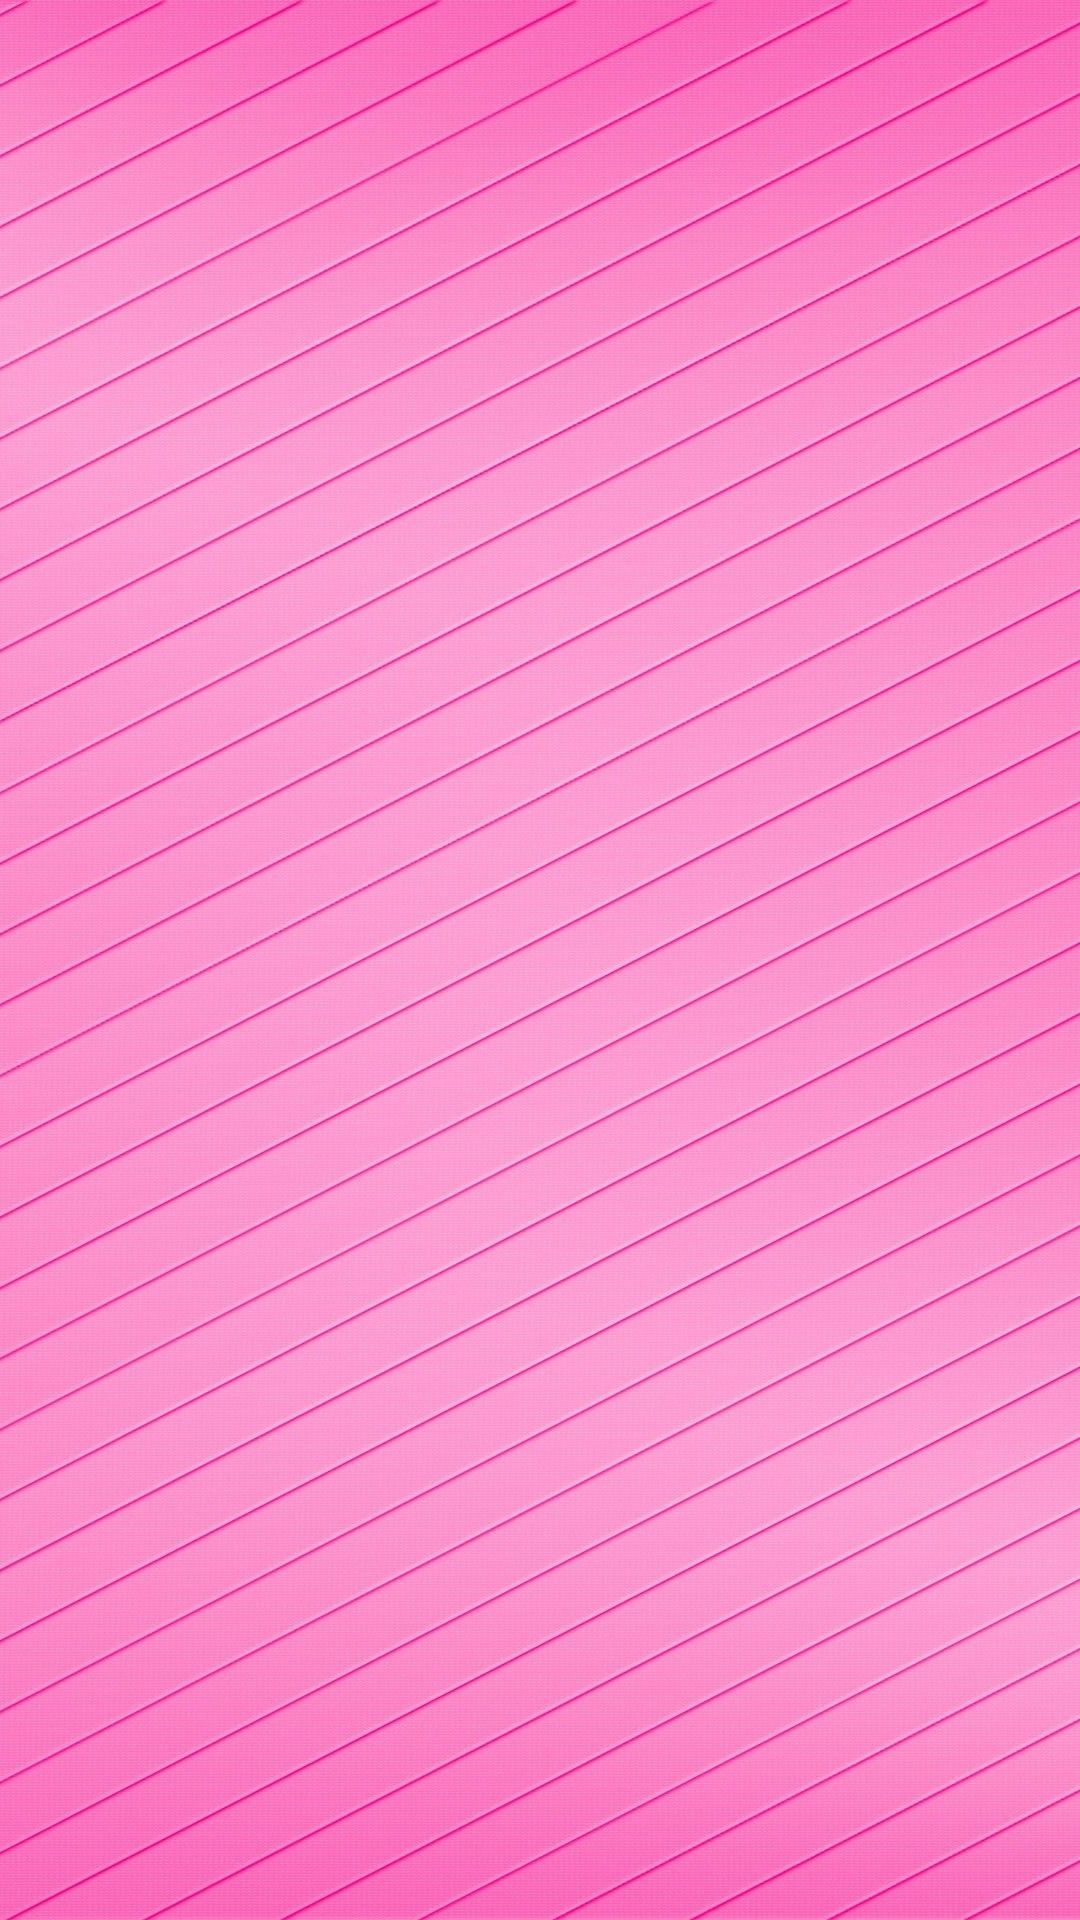 Pink Wallpaper For Android Mobile 2018 Patterns Textures